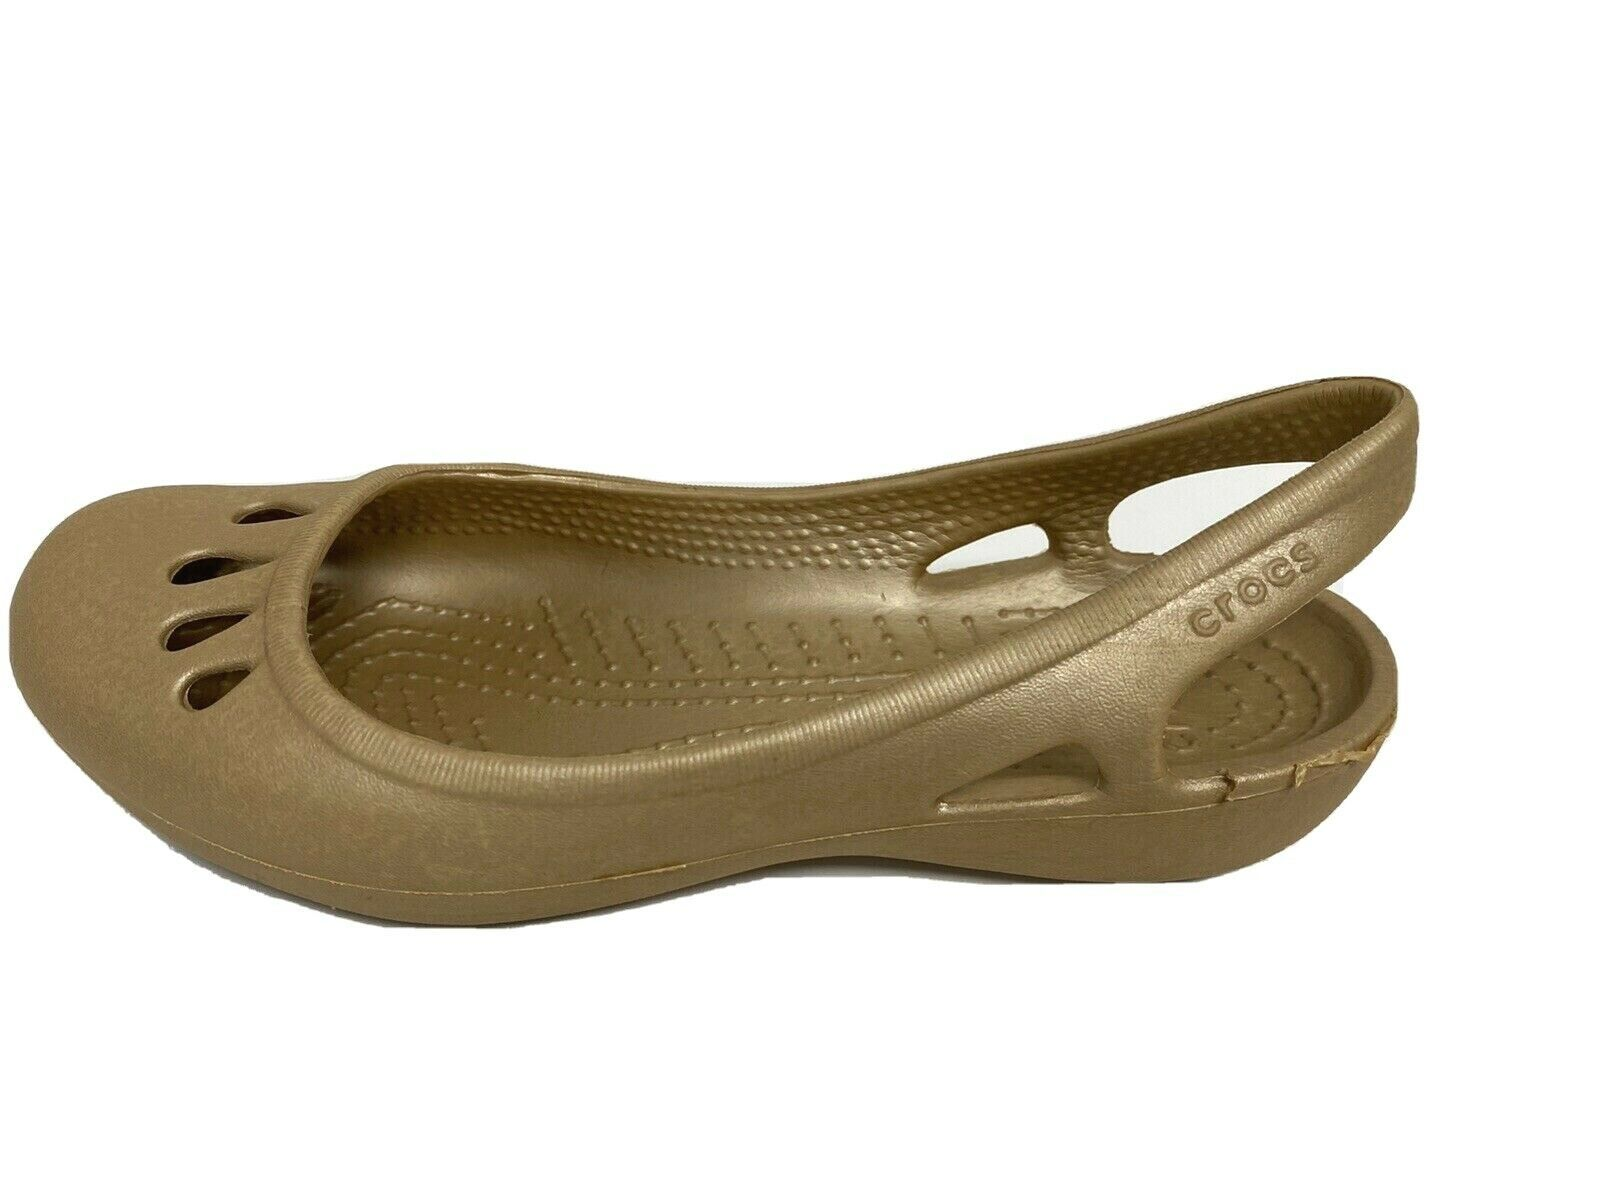 Primary image for Crocs women's sandals ballerina gold size 5